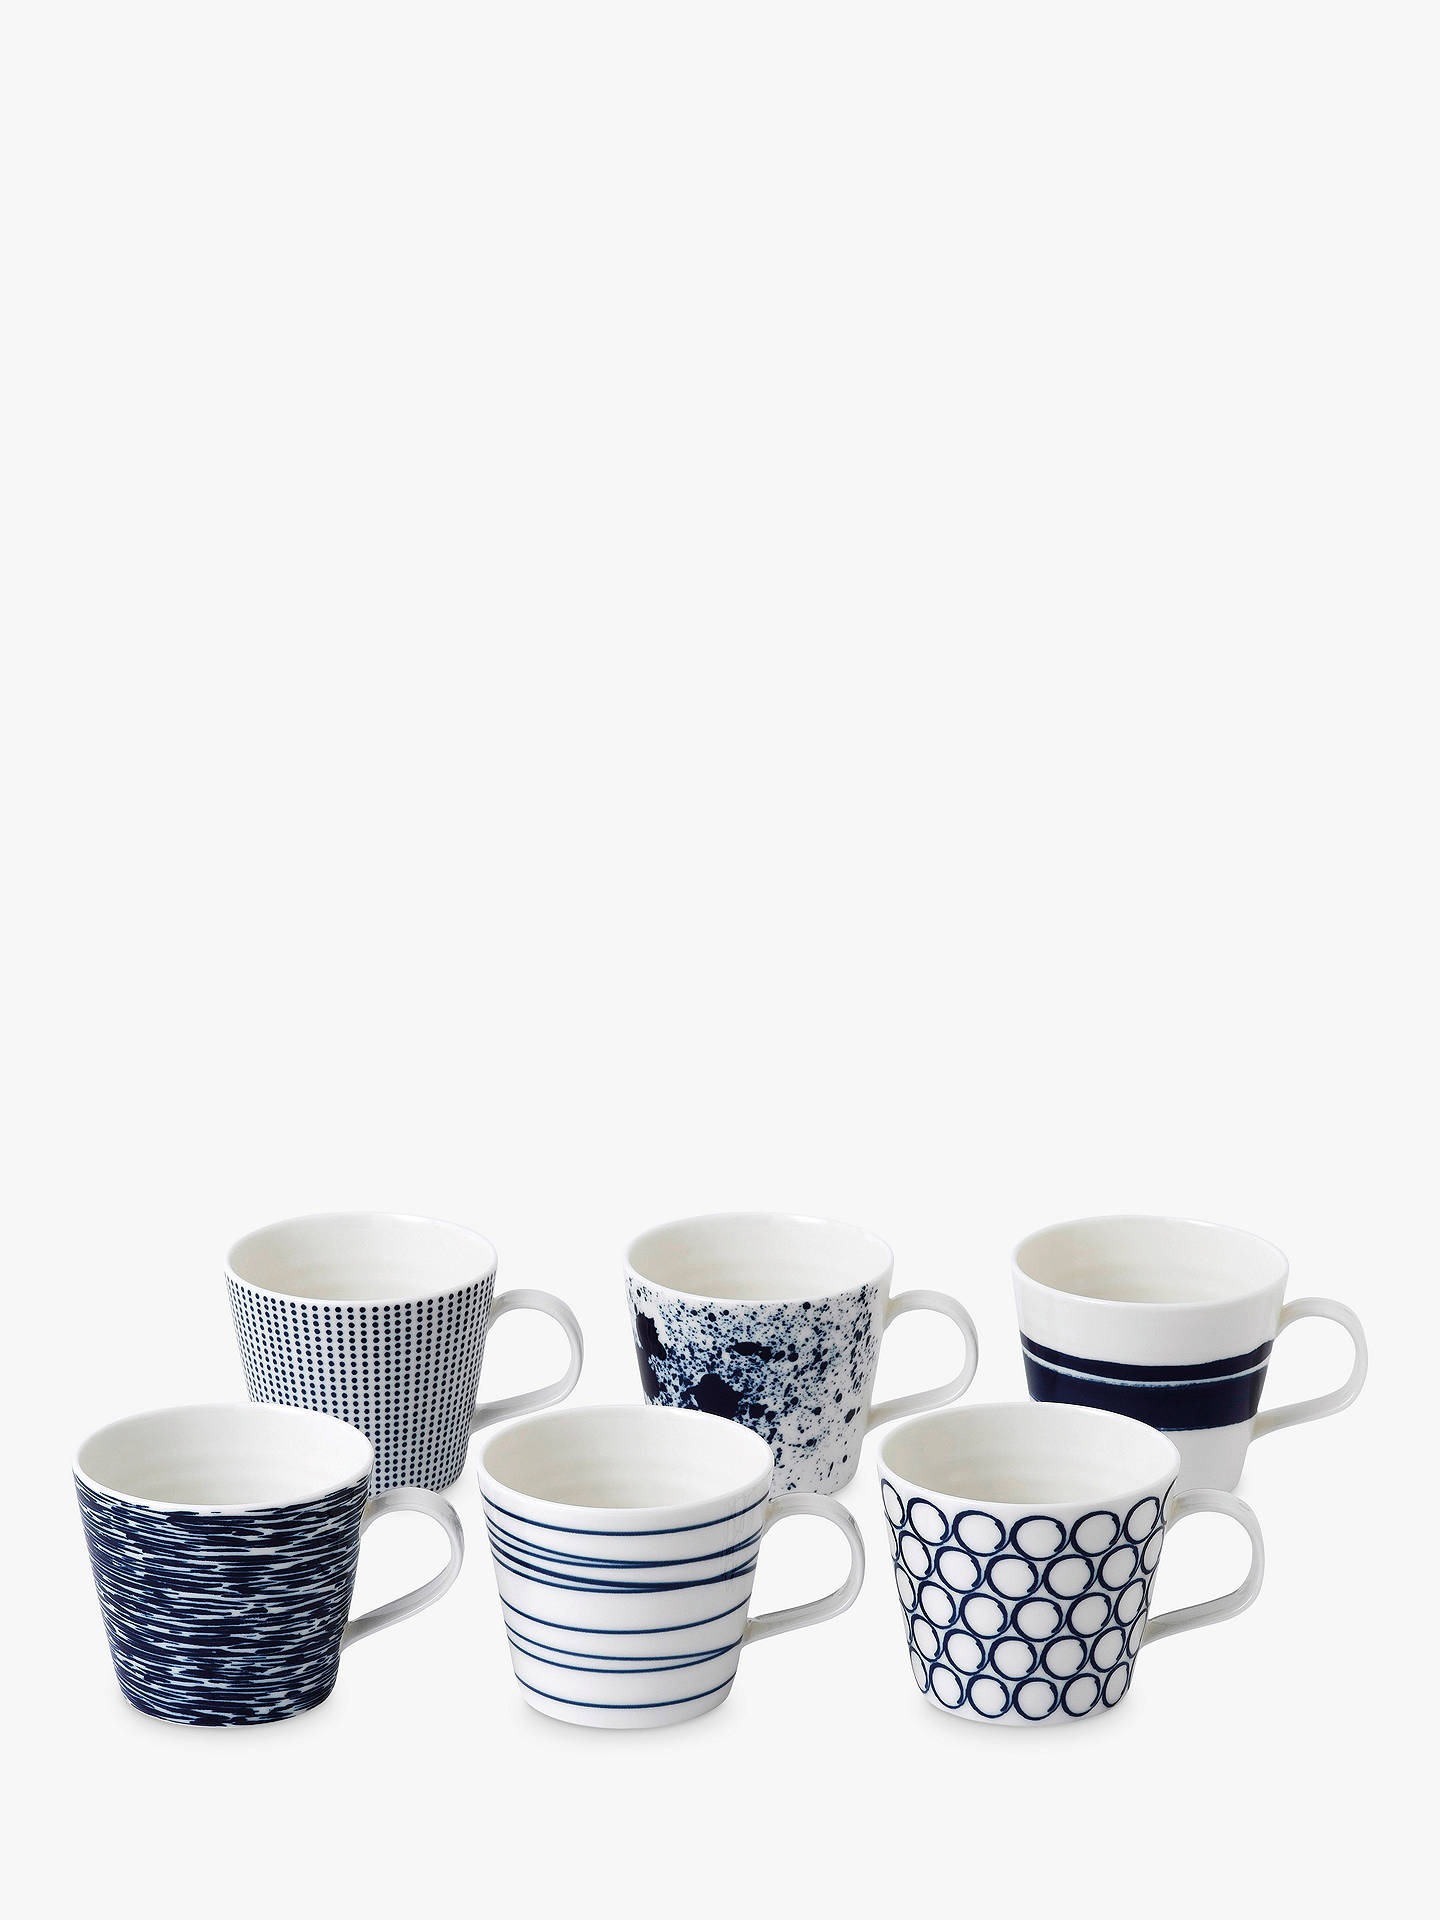 Buy Royal Doulton Pacific Porcelain Small Mugs, 260ml, Assorted, Set of 6, Blue/White Online at johnlewis.com